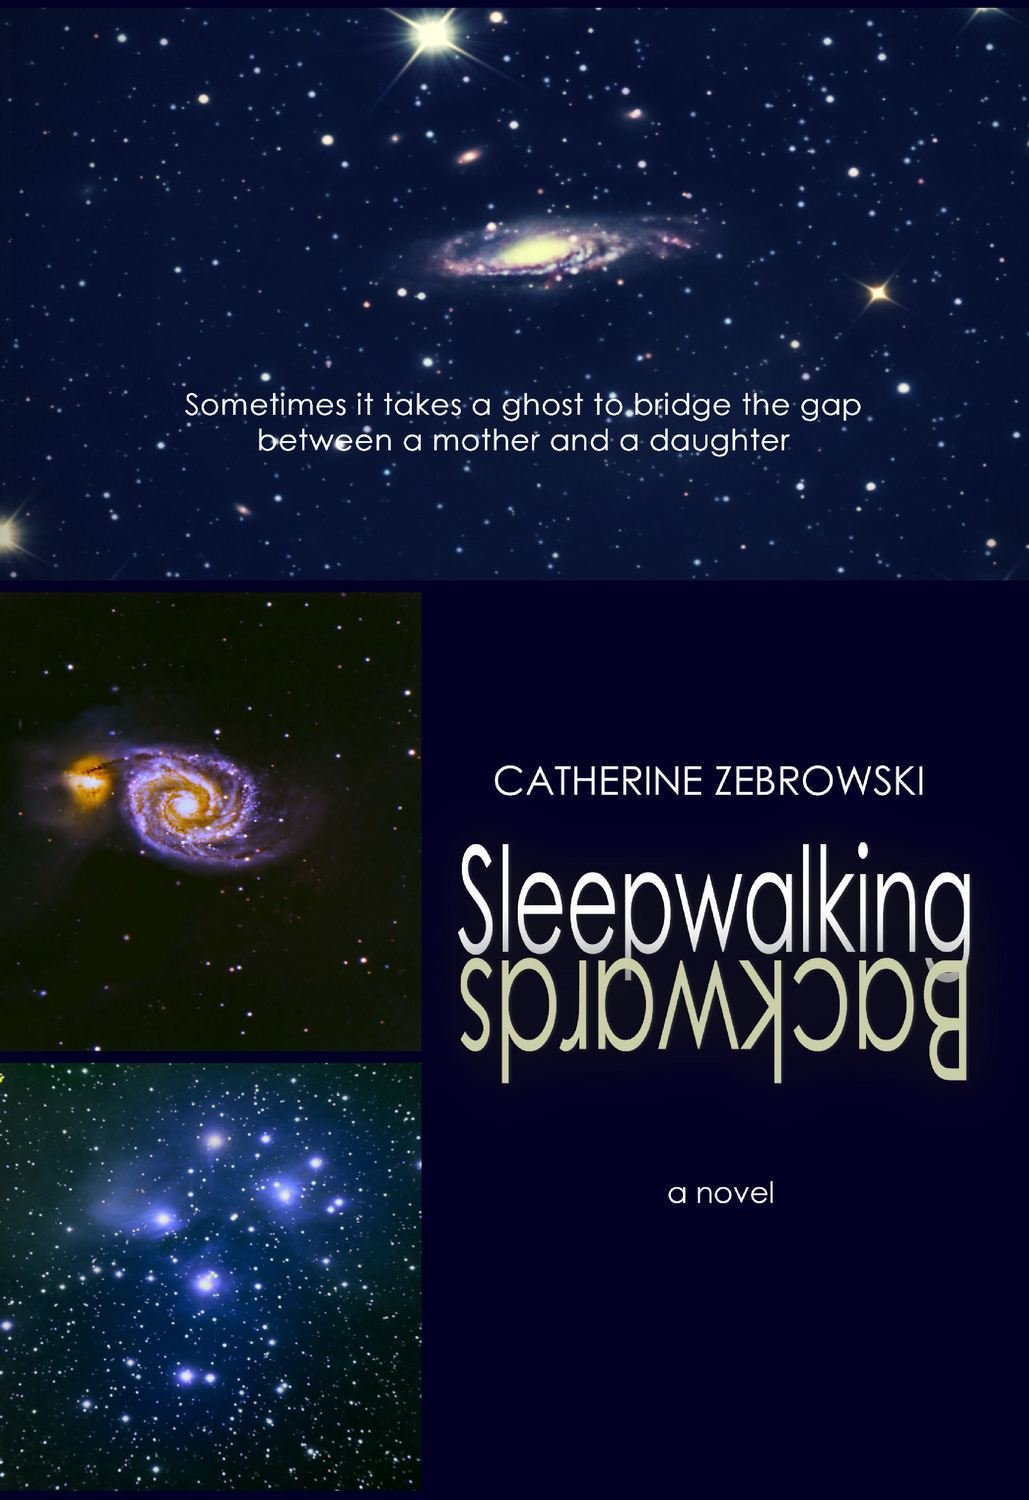 Sleepwalking Backwards